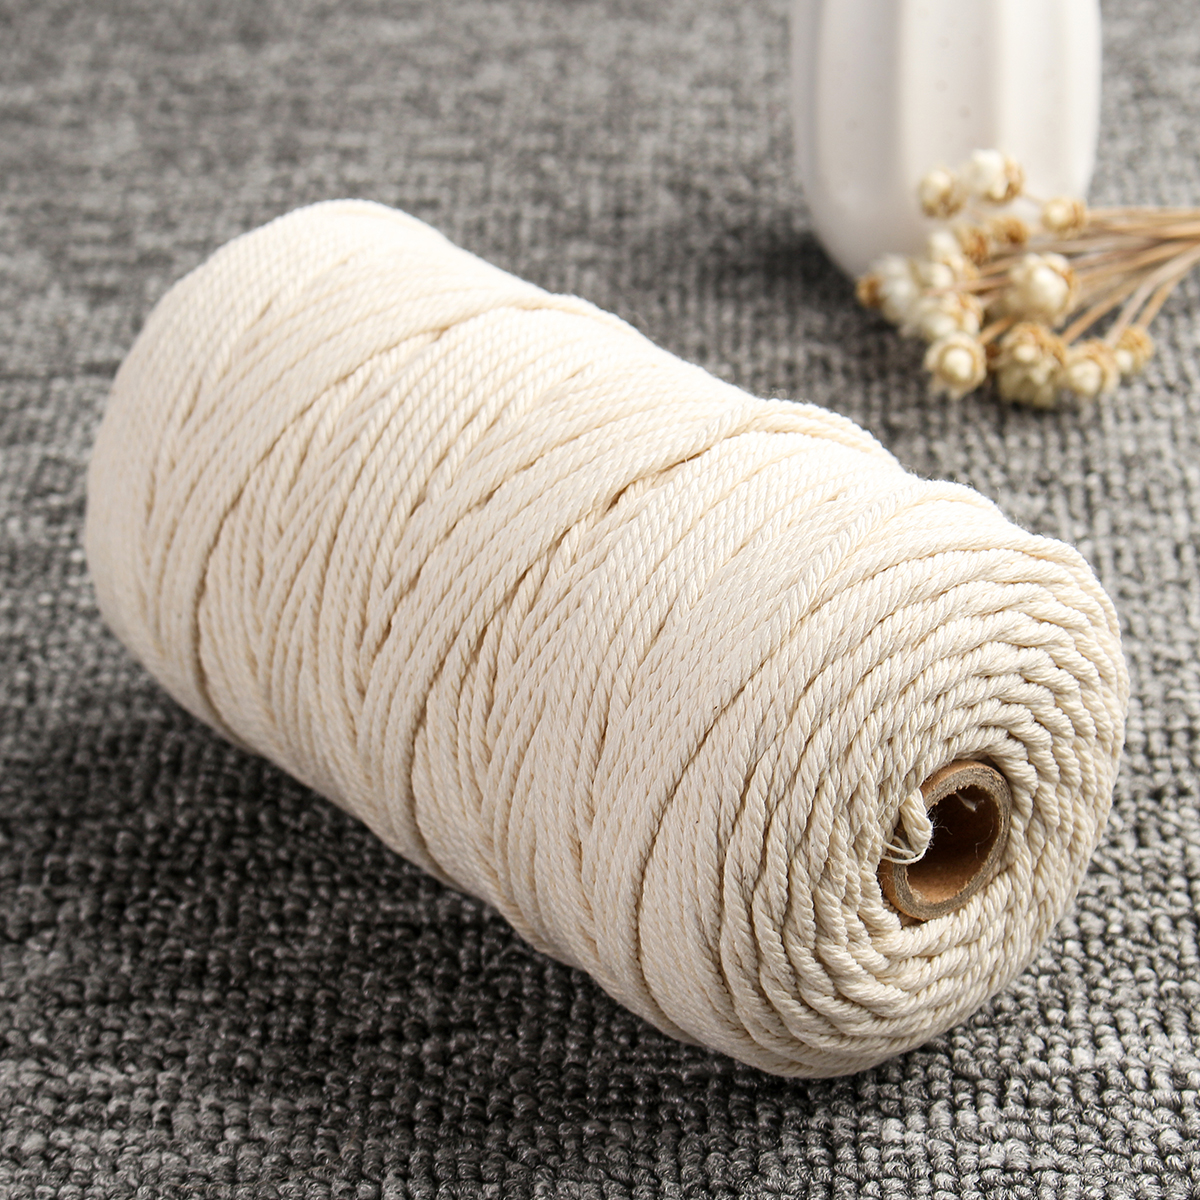 4Pcs 210m Cotton Rope Twisted Cord Rope Craft String Weaving DIY Tools 3mm Diameter